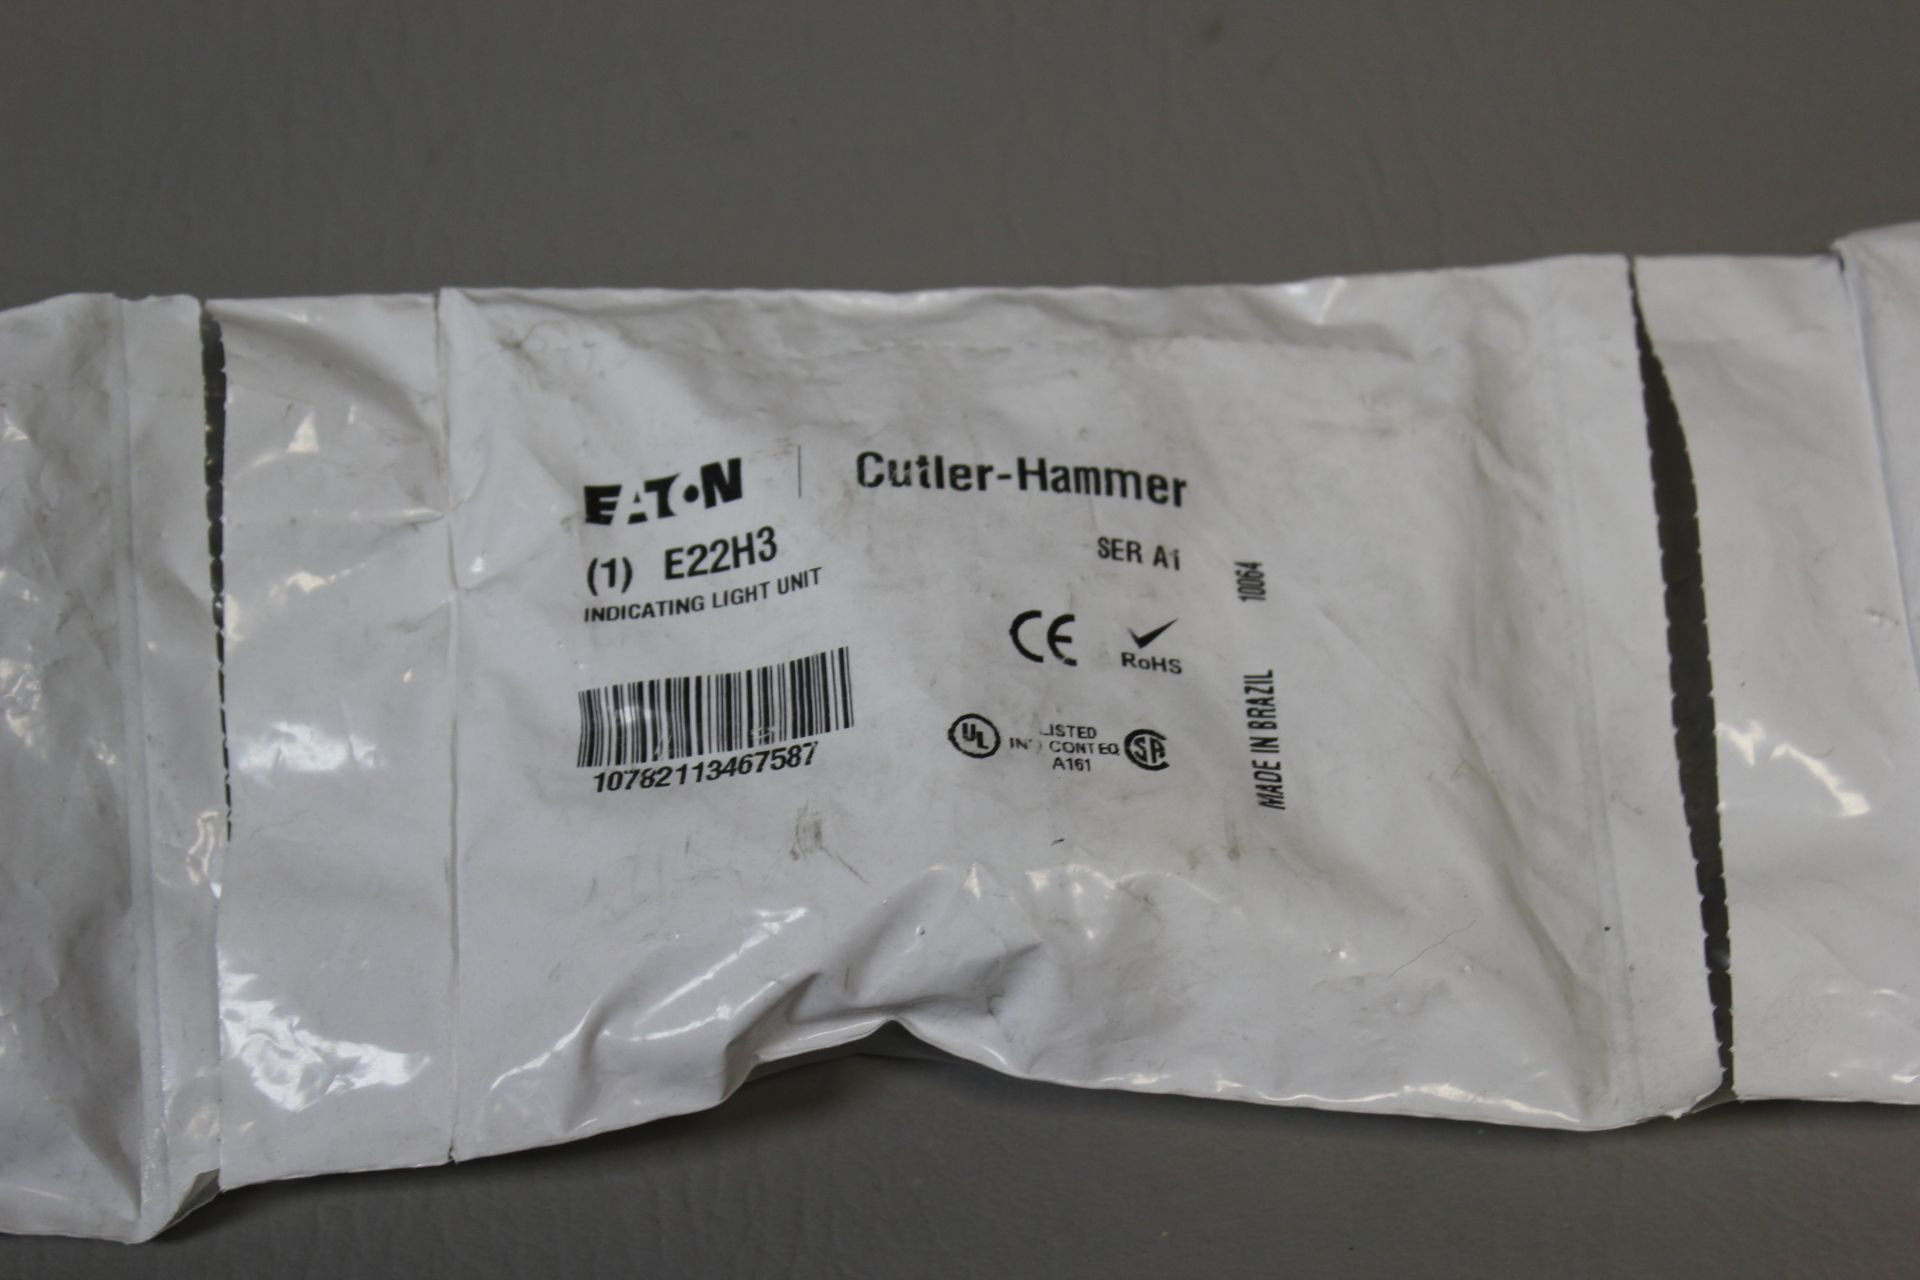 LOT OF NEW CUTLER HAMMER INDICATING LIGHT UNITS - Image 2 of 3